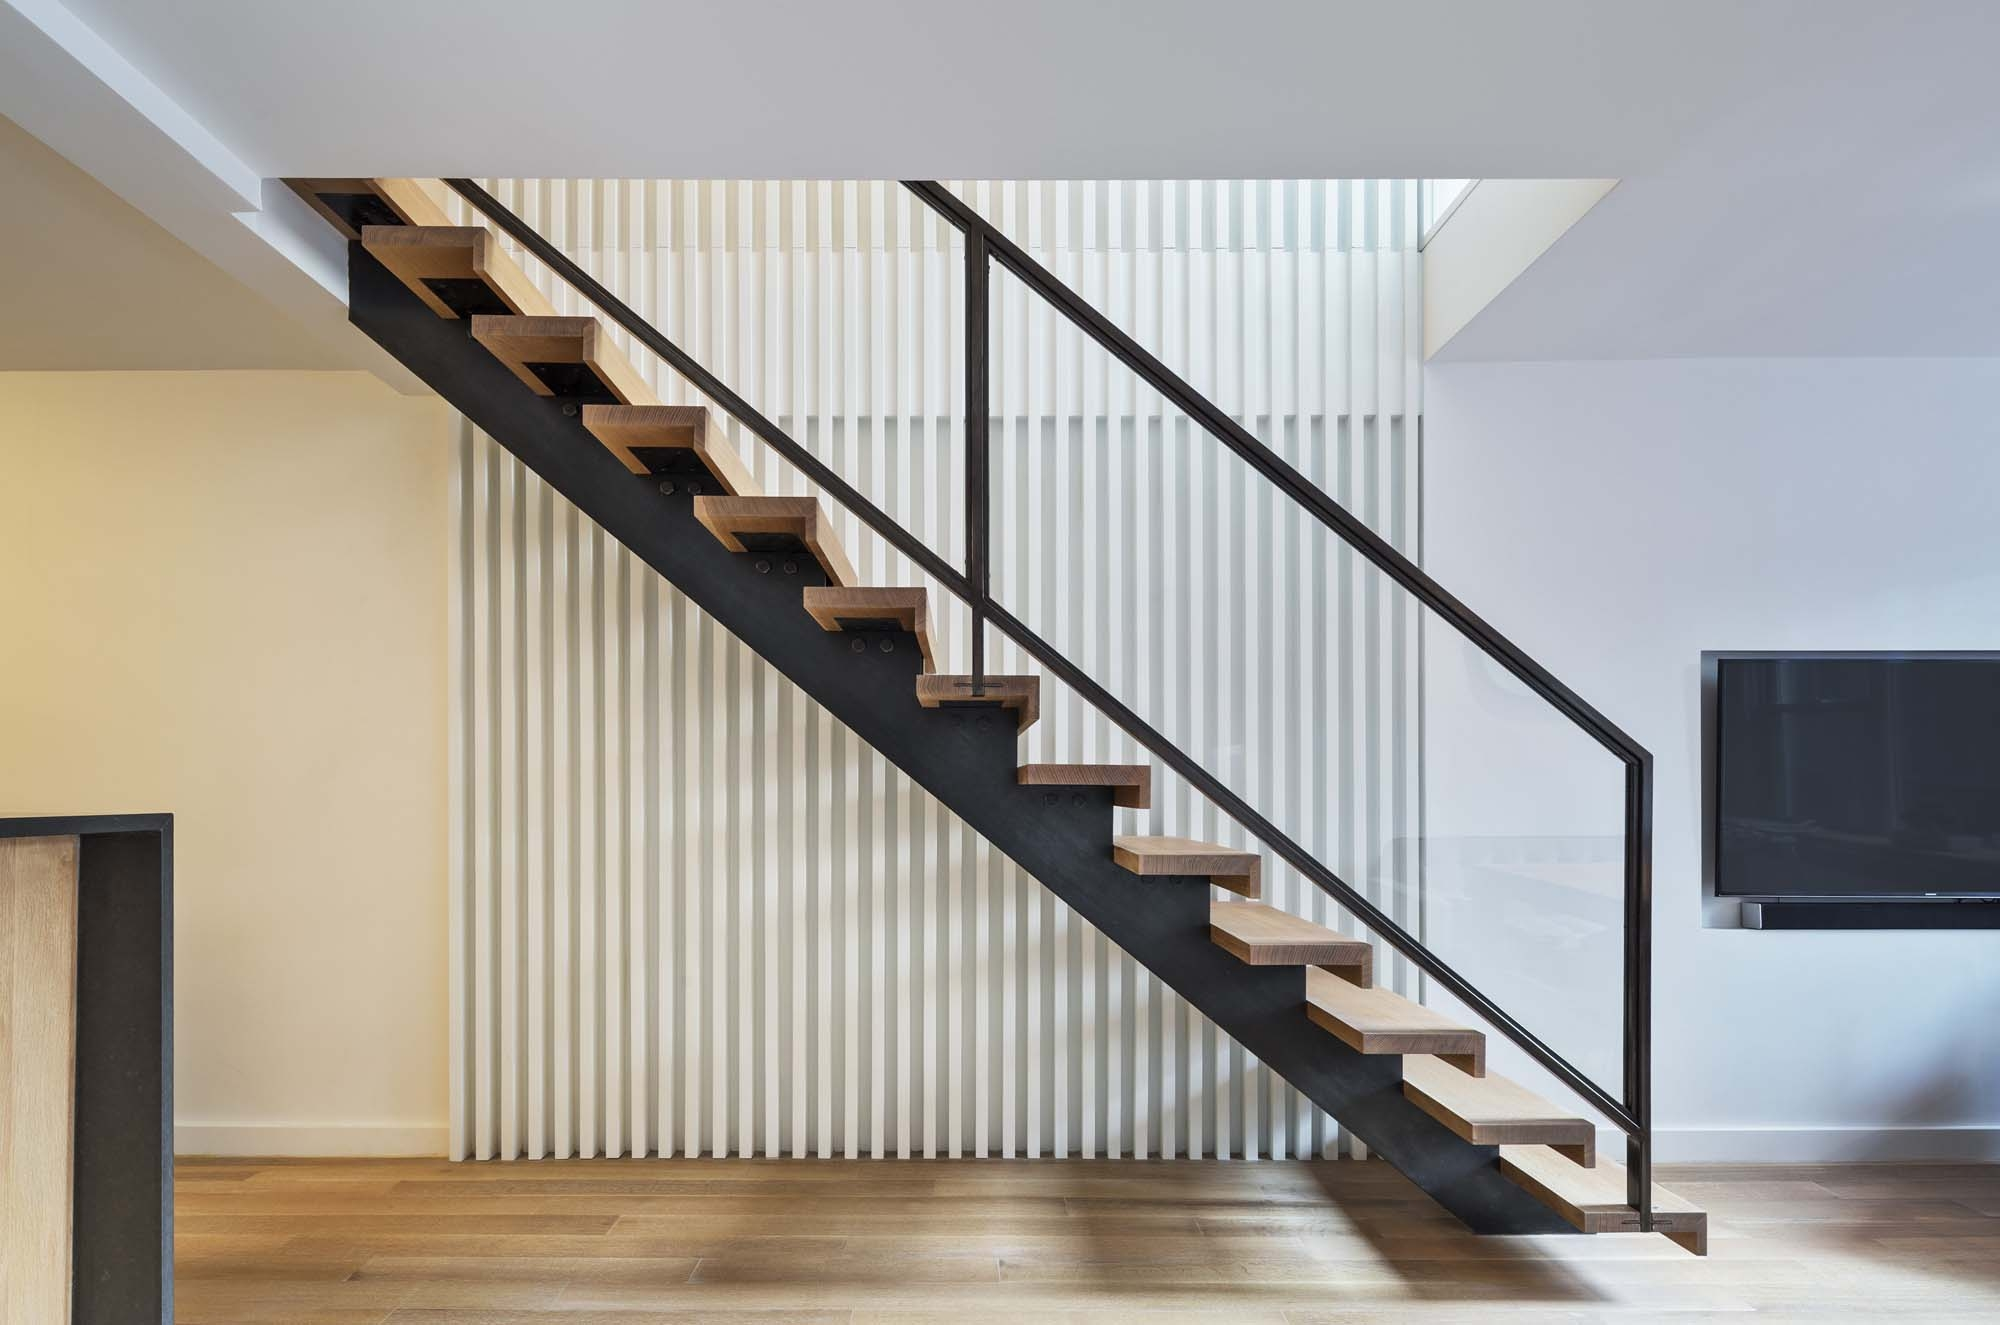 Spiral Staircase Alternatives For Your Nyc Duplex Renovation | 9 Foot Spiral Staircase | 36 Tall | Stair Kit | Modern Staircase | Dolle Toronto | Stair Parts